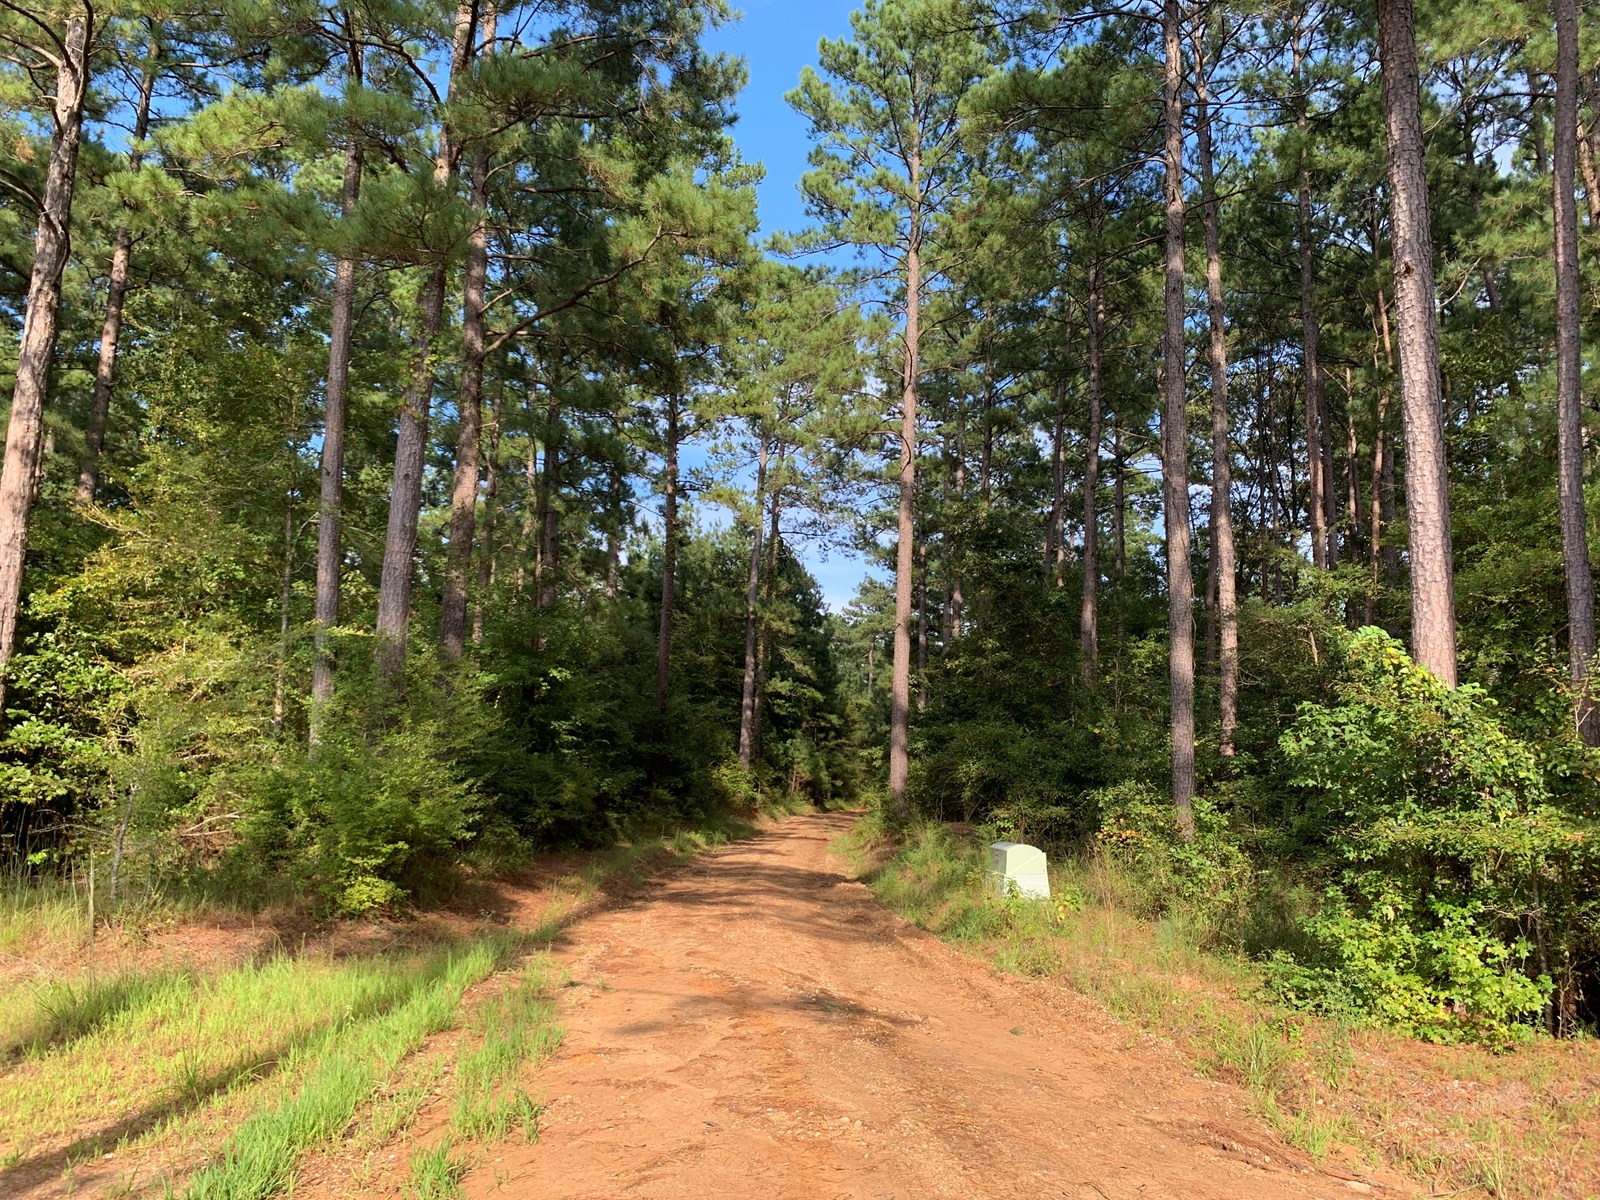 Pine Timber Land W/ Hwy Frontage near Norphlet, AR for Sale